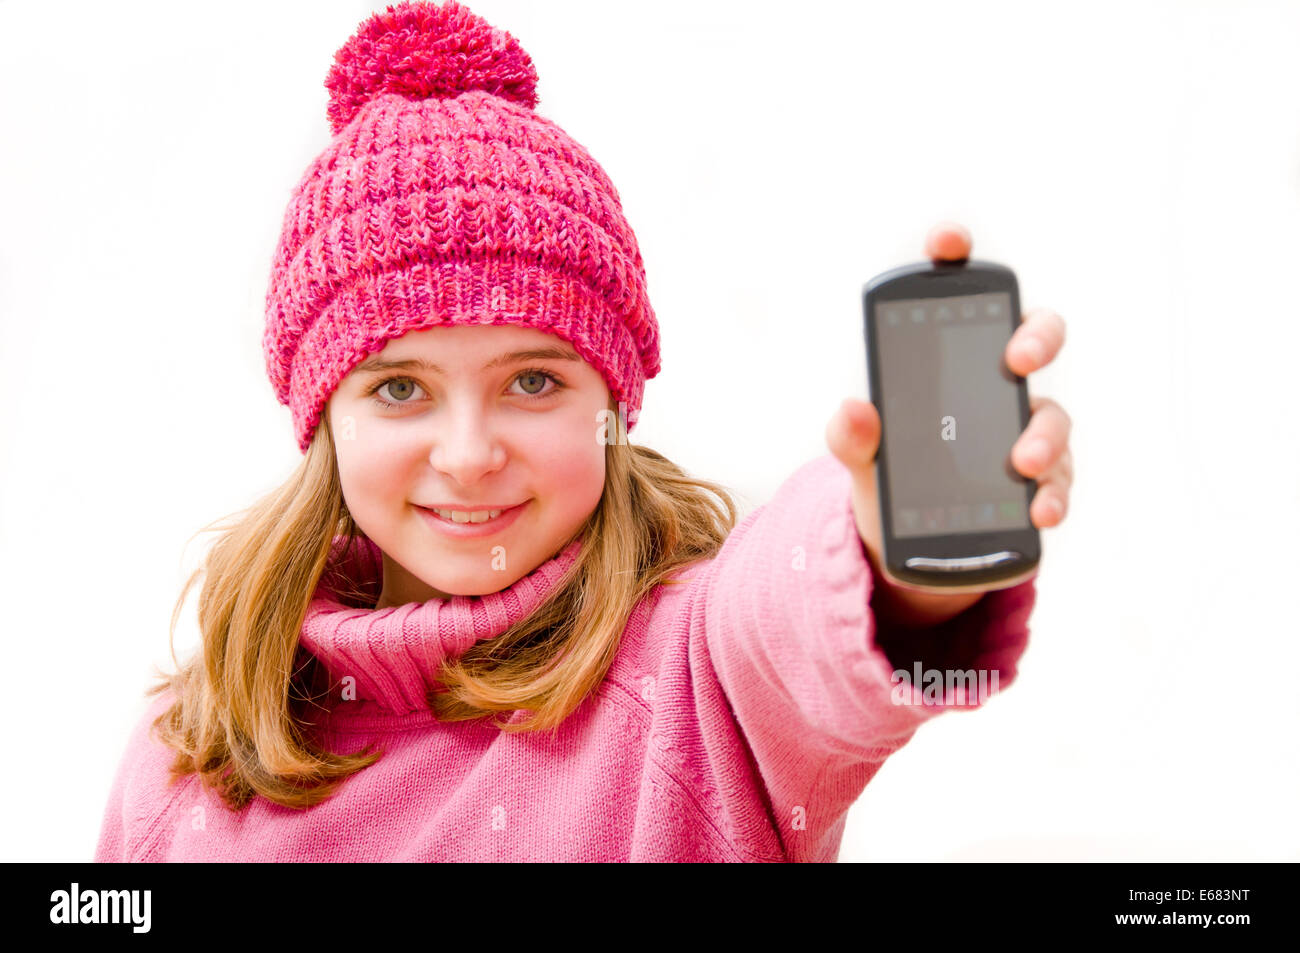 girl showing her cellphone - Stock Image